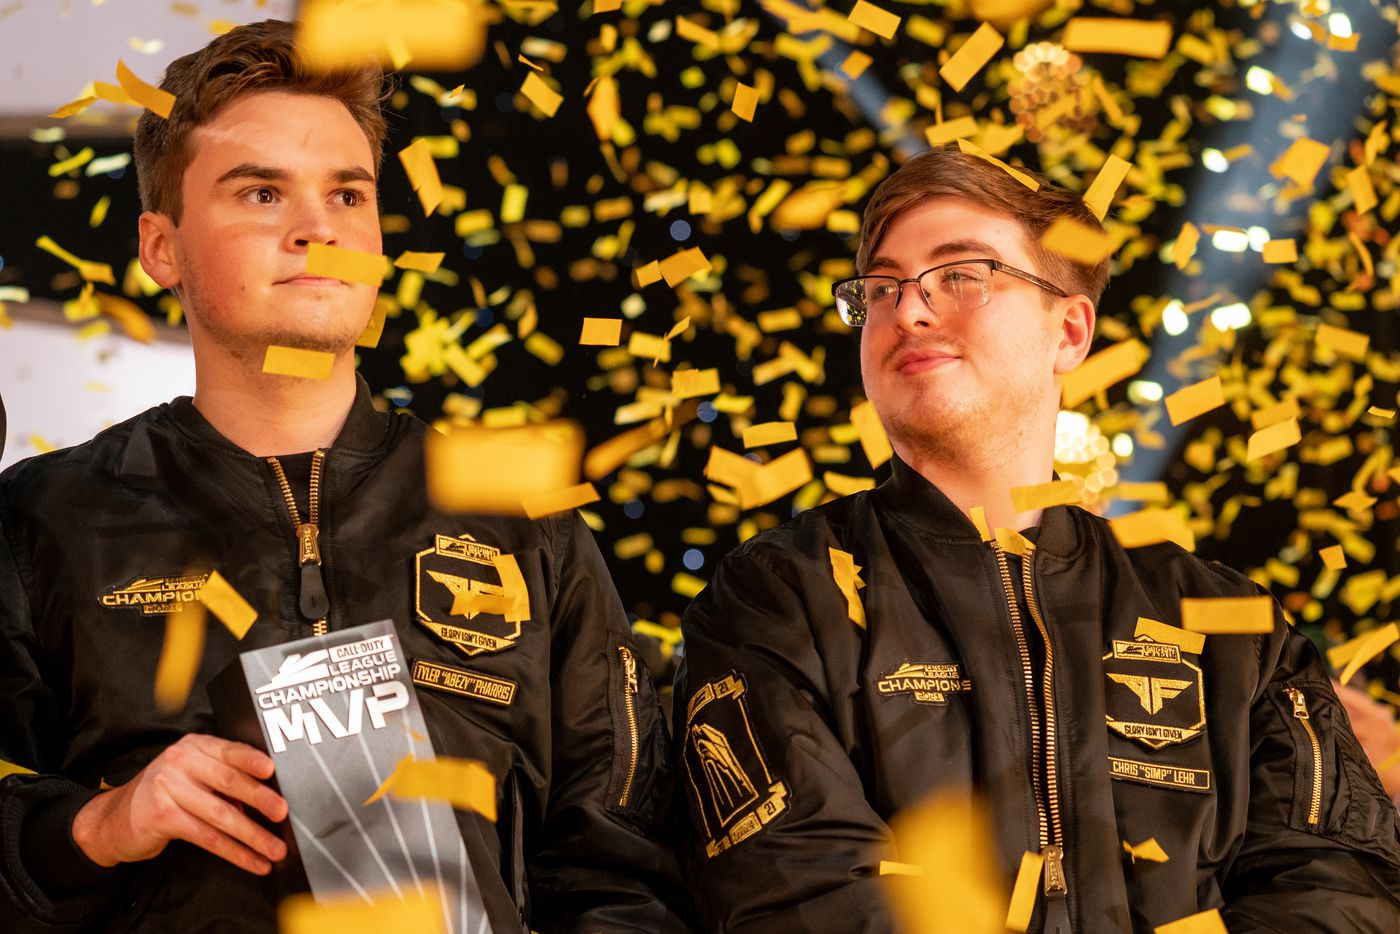 """From left, Tyler """"aBeZy"""" Pharris and Chris """"Simp"""" Lehr of the Atlanta FaZe celebrates as FaZe beats the Toronto Ultra  during the Call of Duty league playoffs championship round at the Galen Center on Sunday, August 22, 2021 in Los Angeles, California. The Atlanta FaZe beat the Toronto Ultra 5 - 3."""